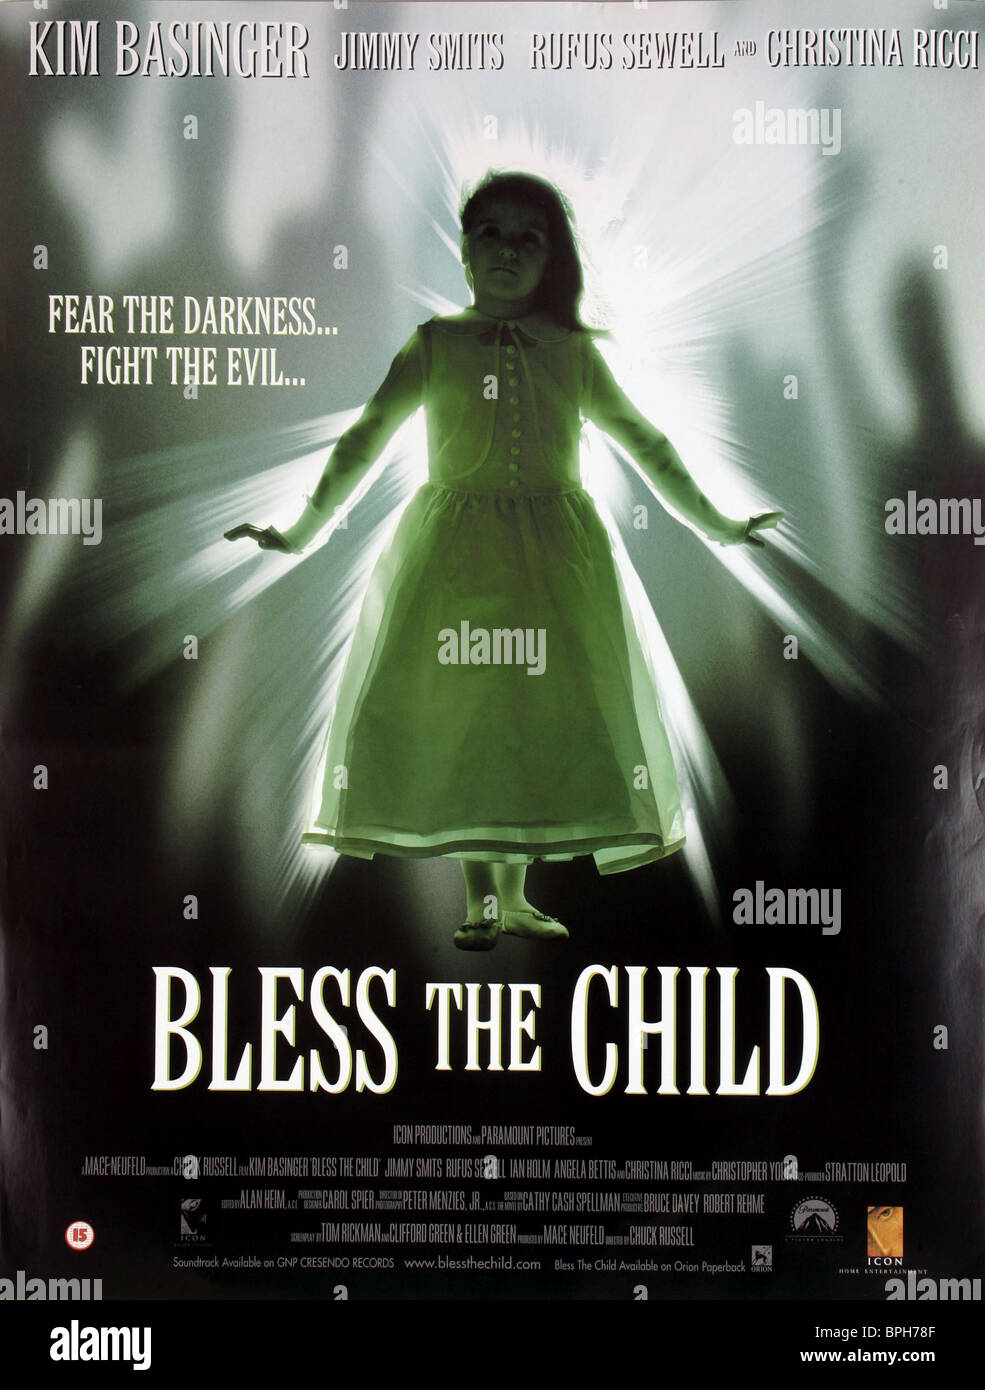 Film Poster Bless The Child 2000 Stock Photo 31111711 Alamy